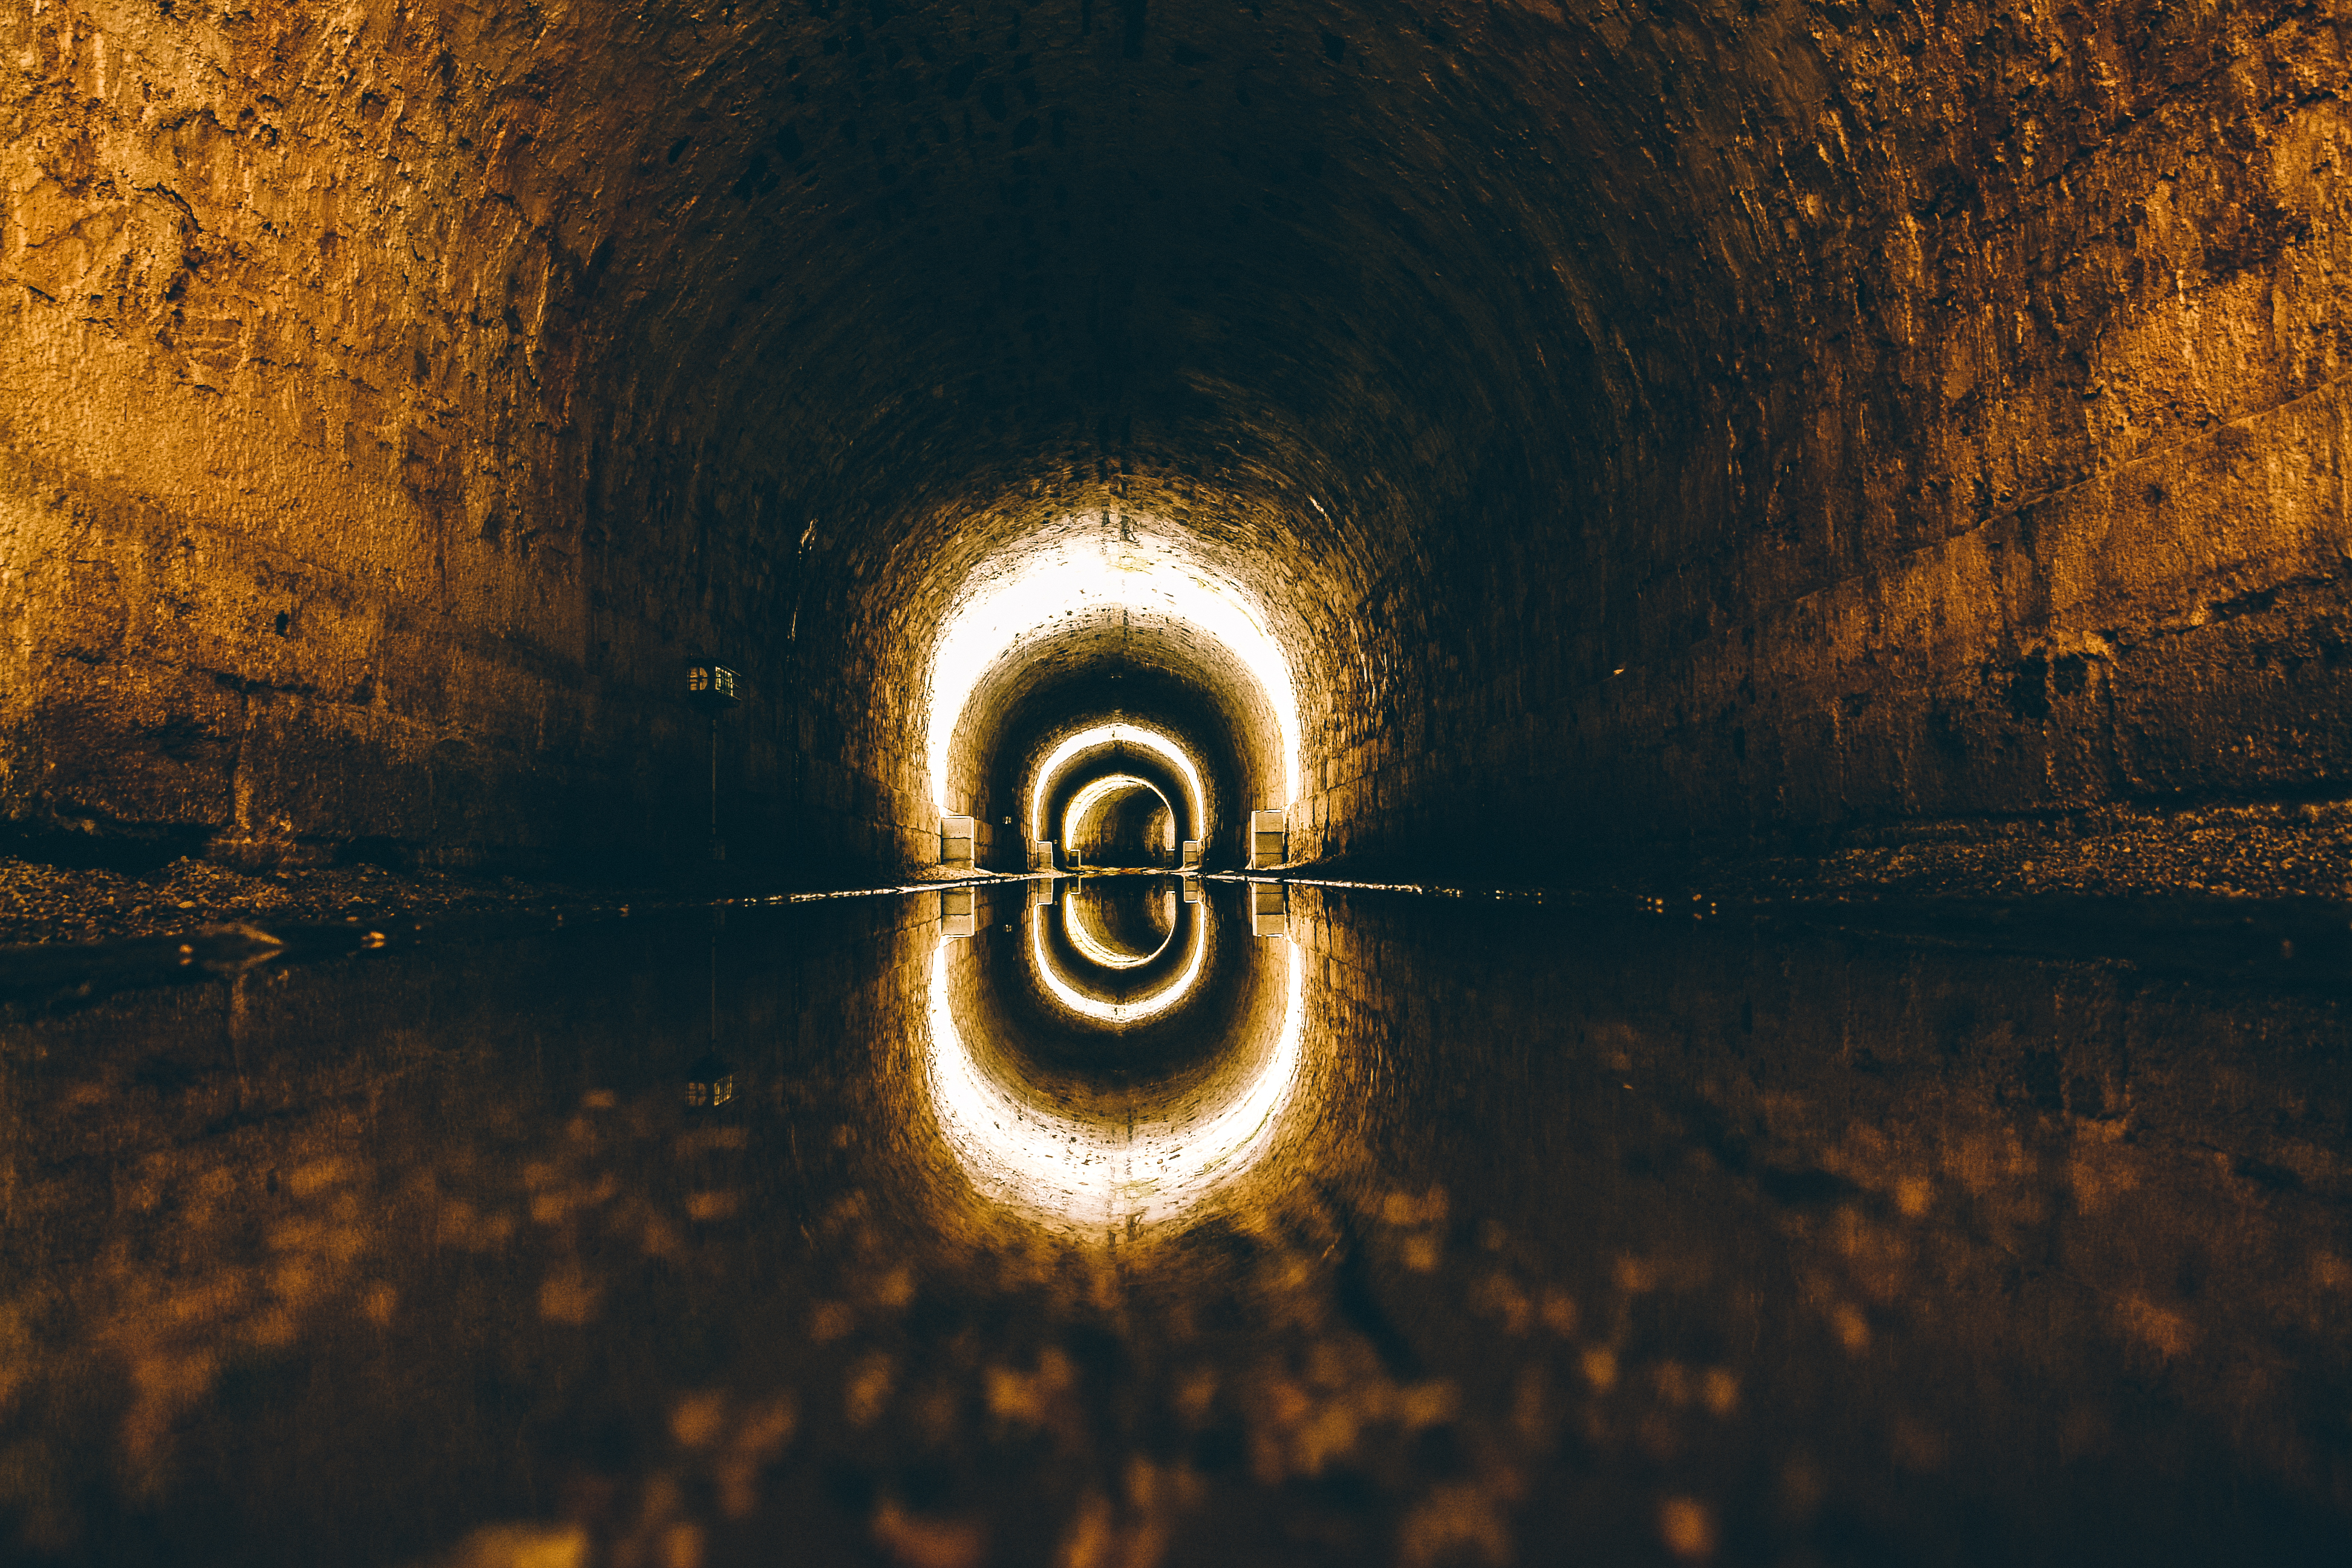 Tunel sewer, sewer, tune, water, stone, ancient